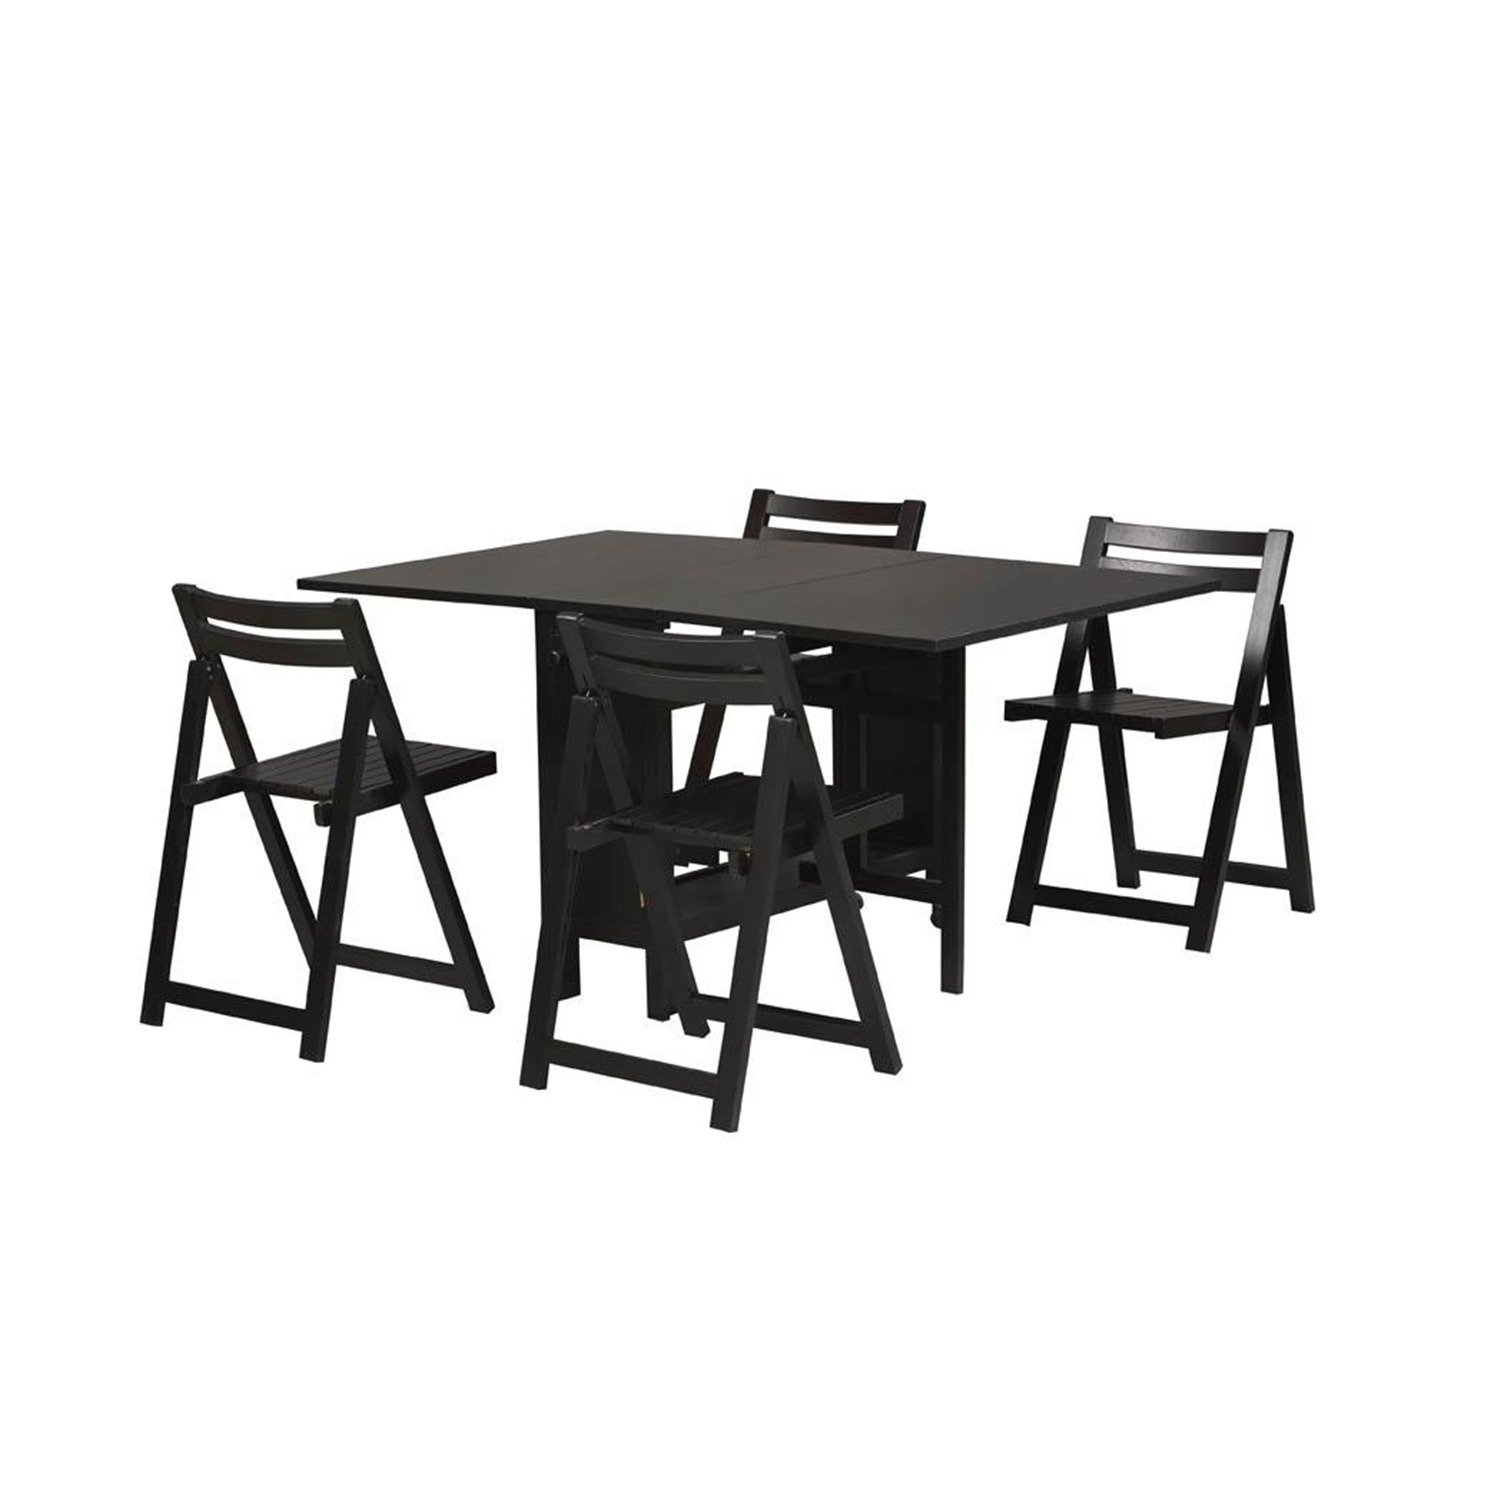 Linon space saver 5 piece dining set by oj commerce 901blk - Small space dinette sets set ...